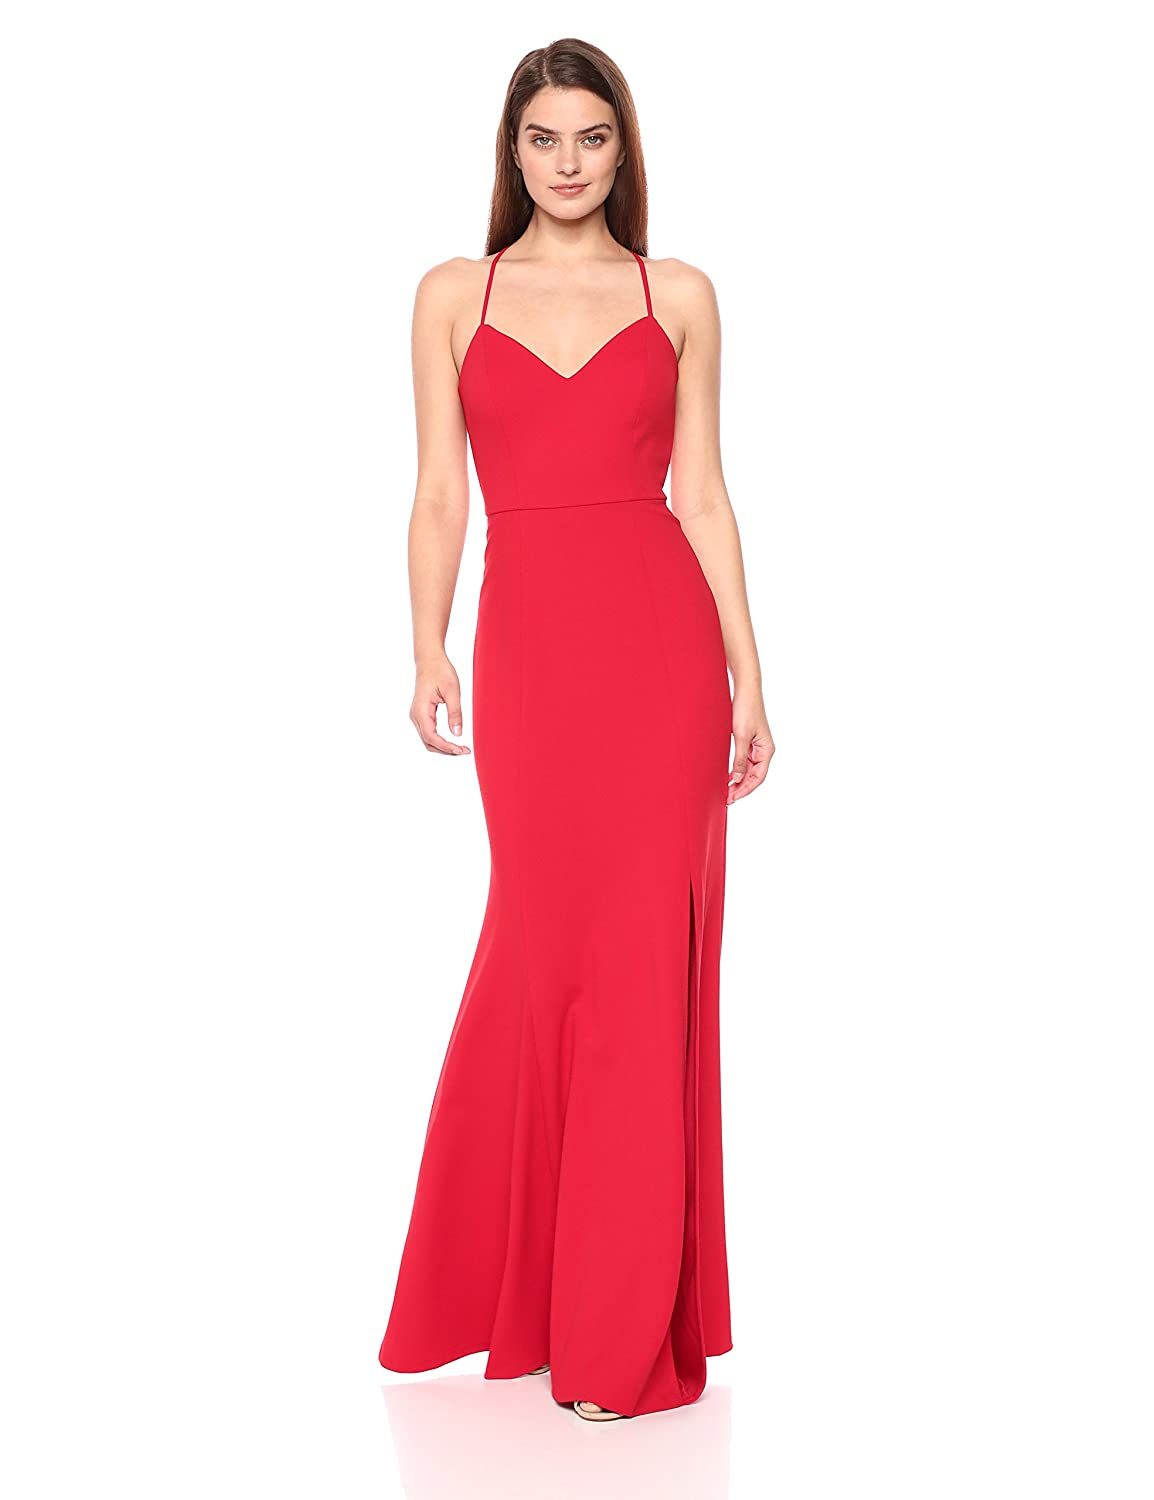 Scarlet Jenny Yoo Womens Reese Spaghetti Strap Fitted Crepe Gown Special Occasion Dress